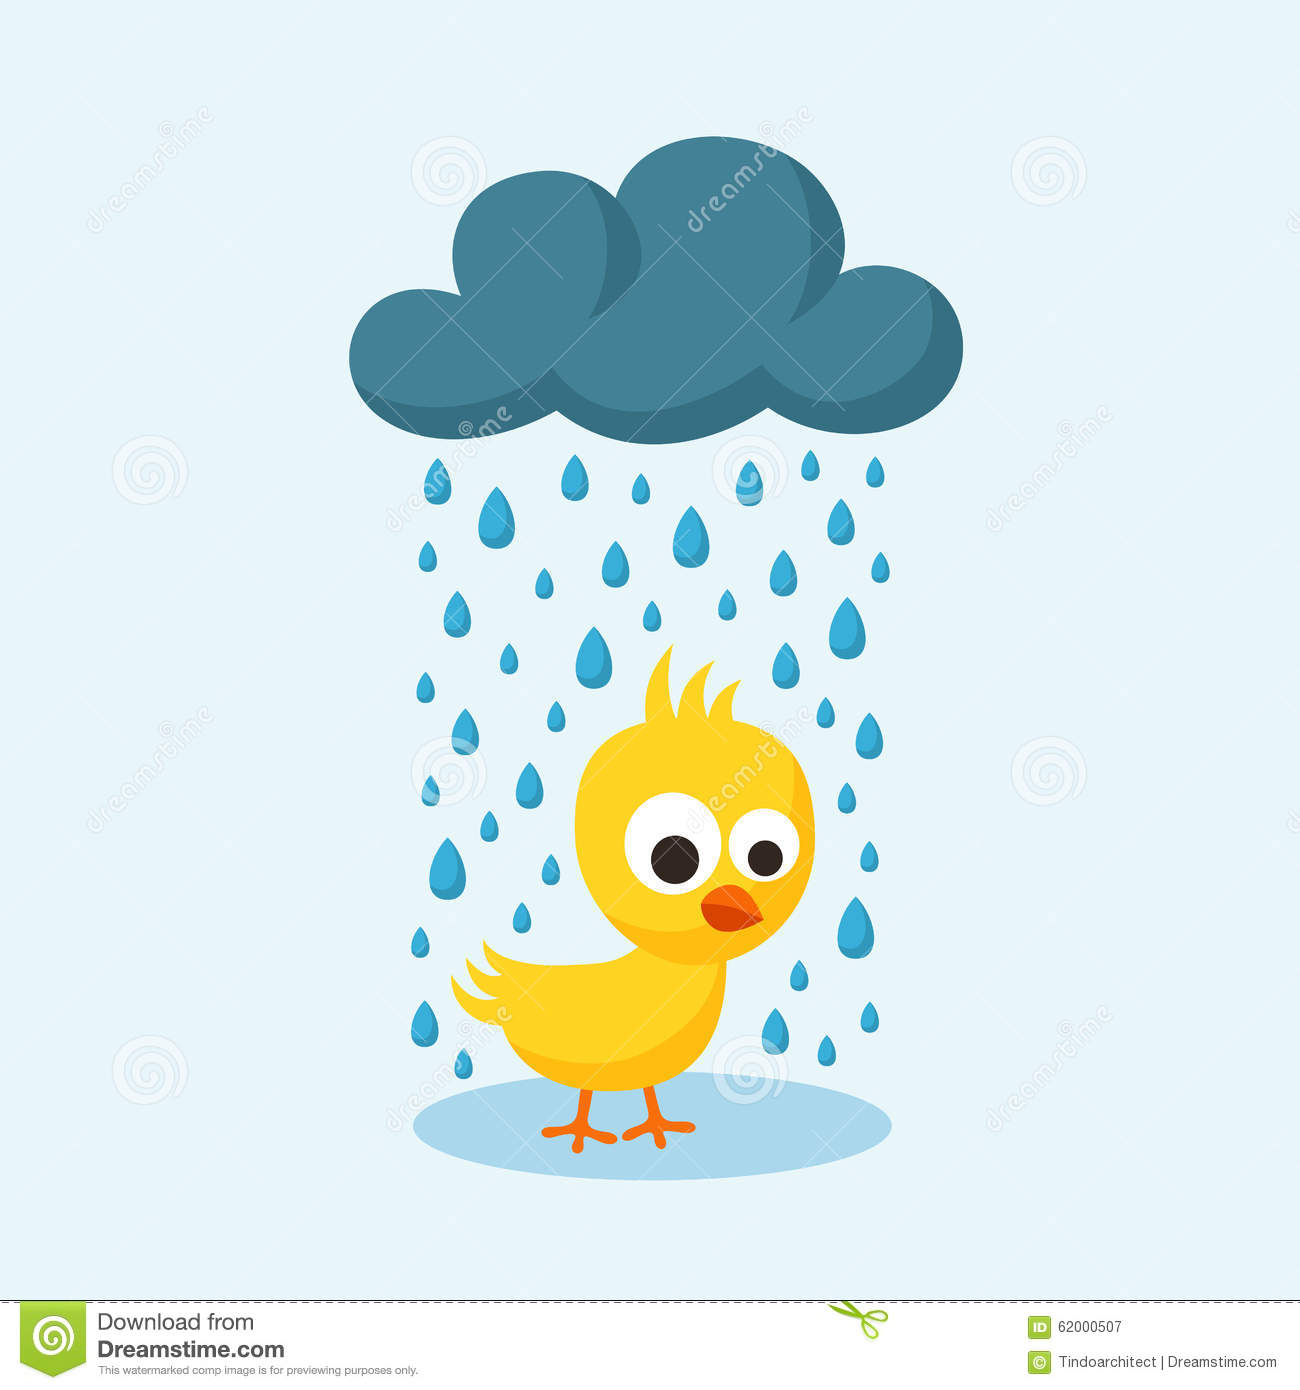 sad chick in the rain on friday the 13th stock vector friday the 13th clip art for kids friday the 13th clip art images